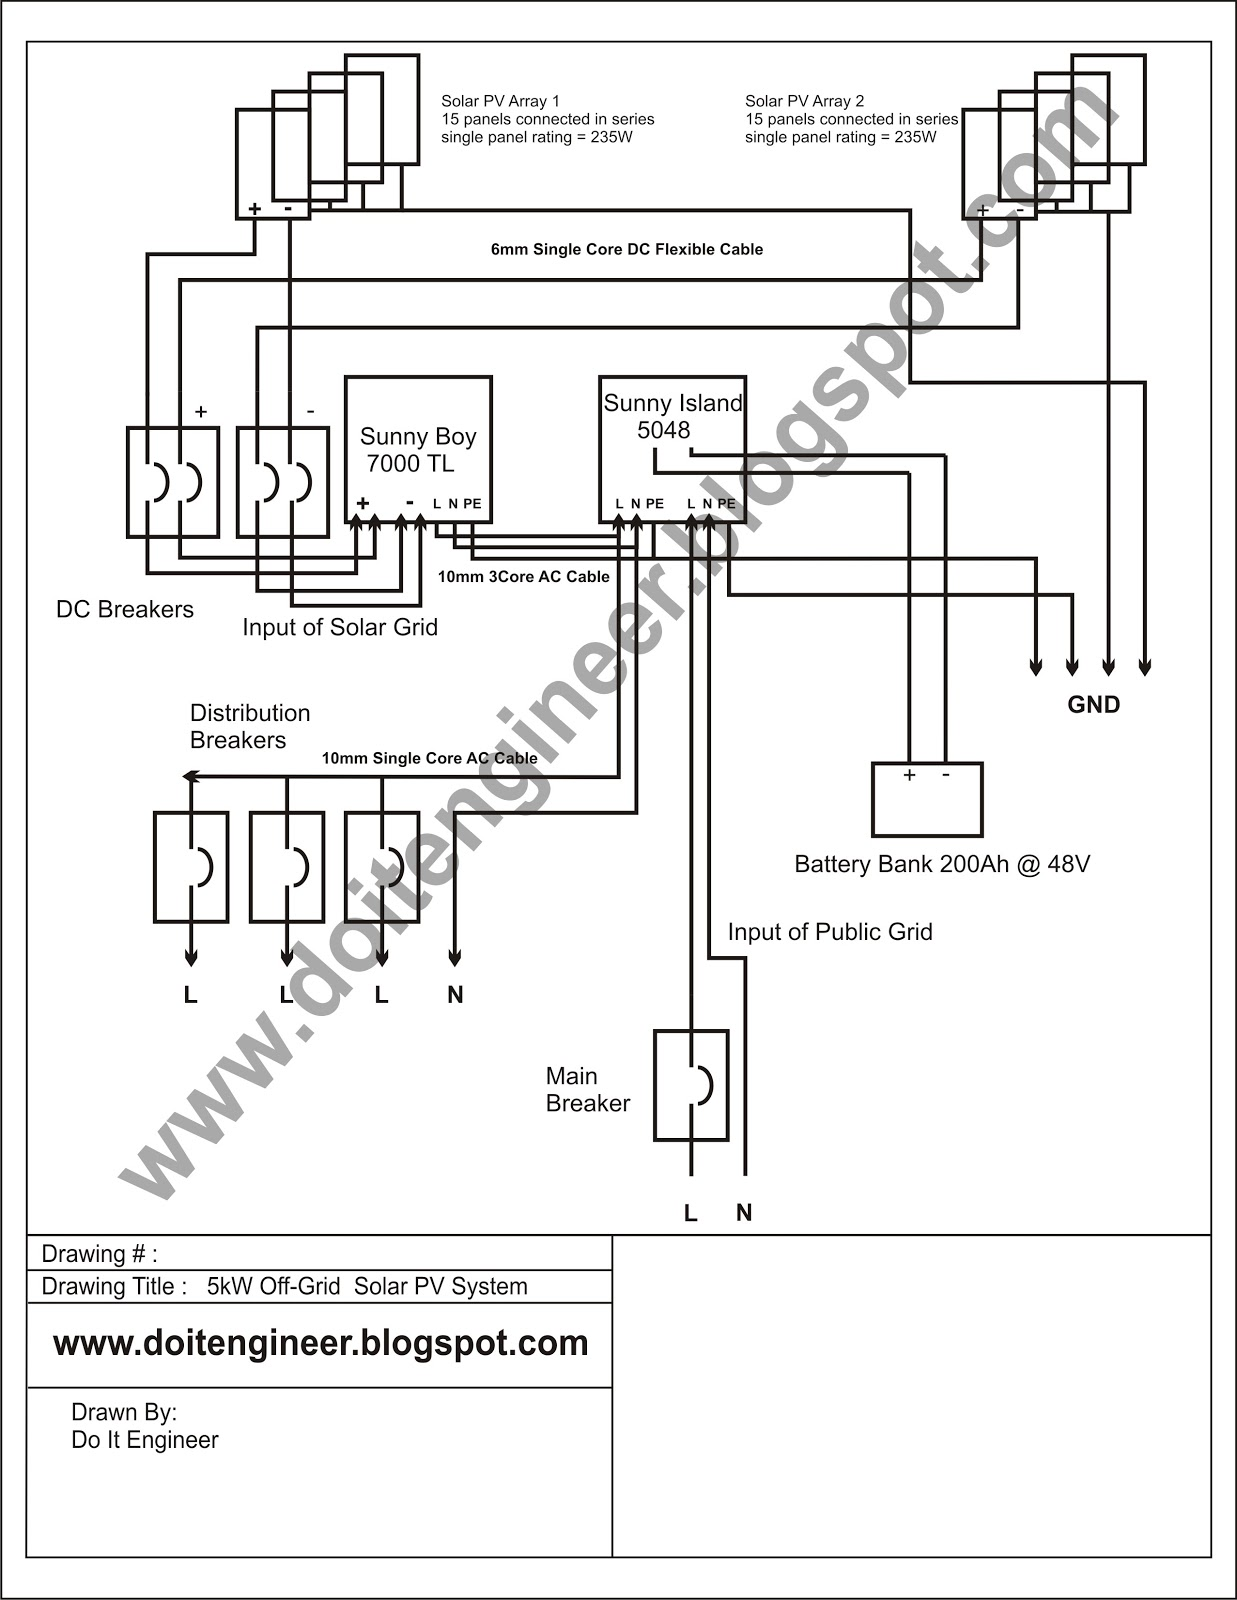 small resolution of off grid solar system schematic page 2 pics about space grid tie solar system schematic page 2 pics about space